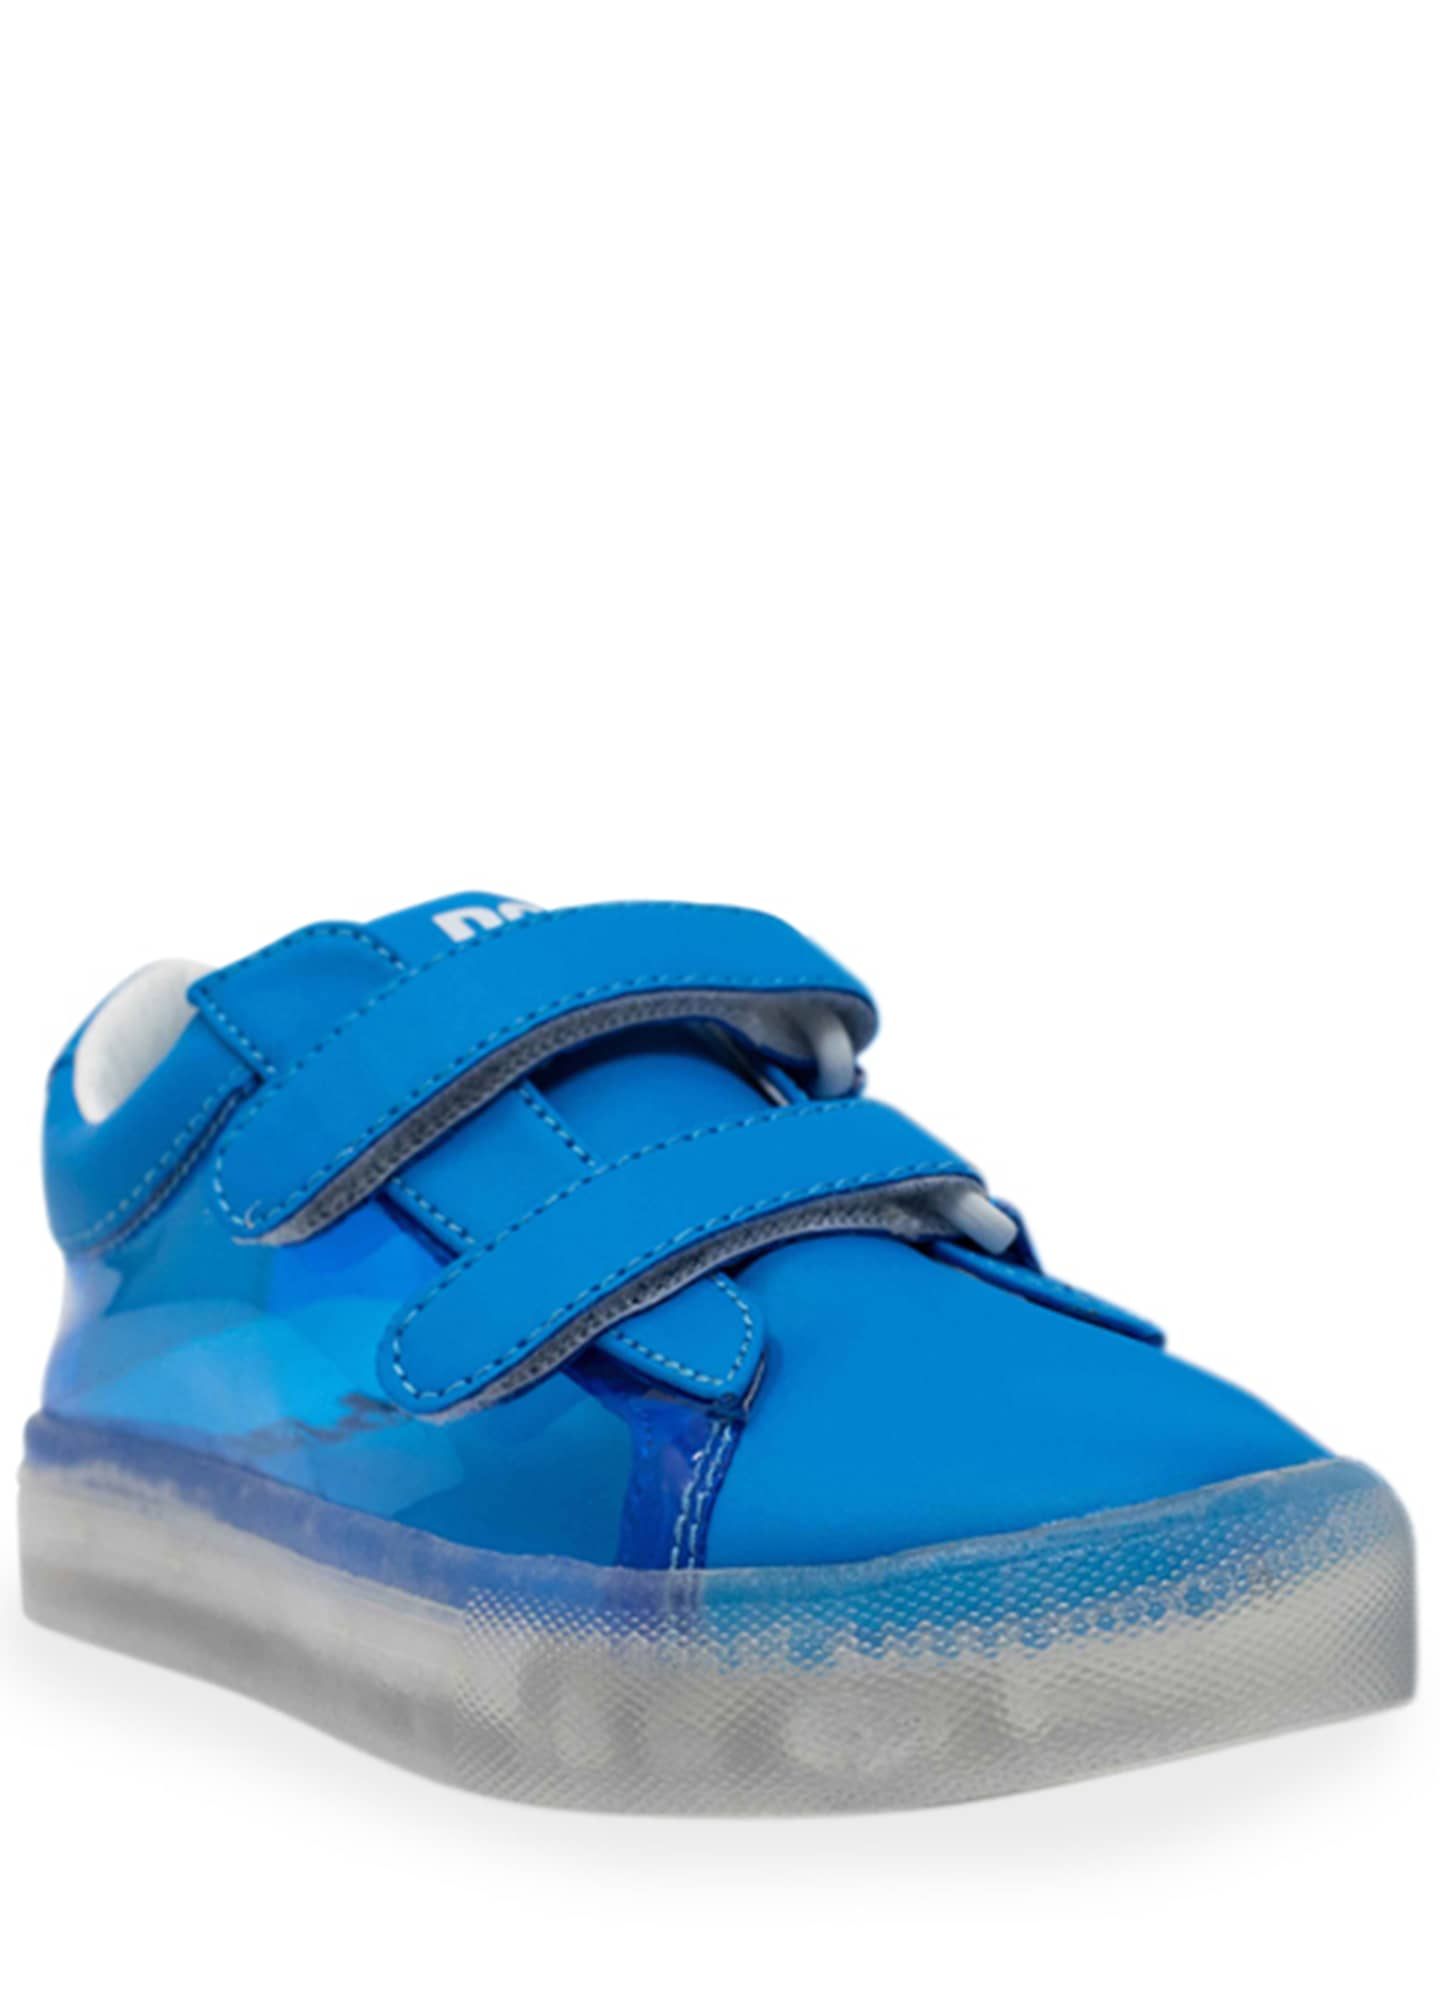 Pop Shoes EZ Clear Light-Up Sneakers, Toddler/Kids